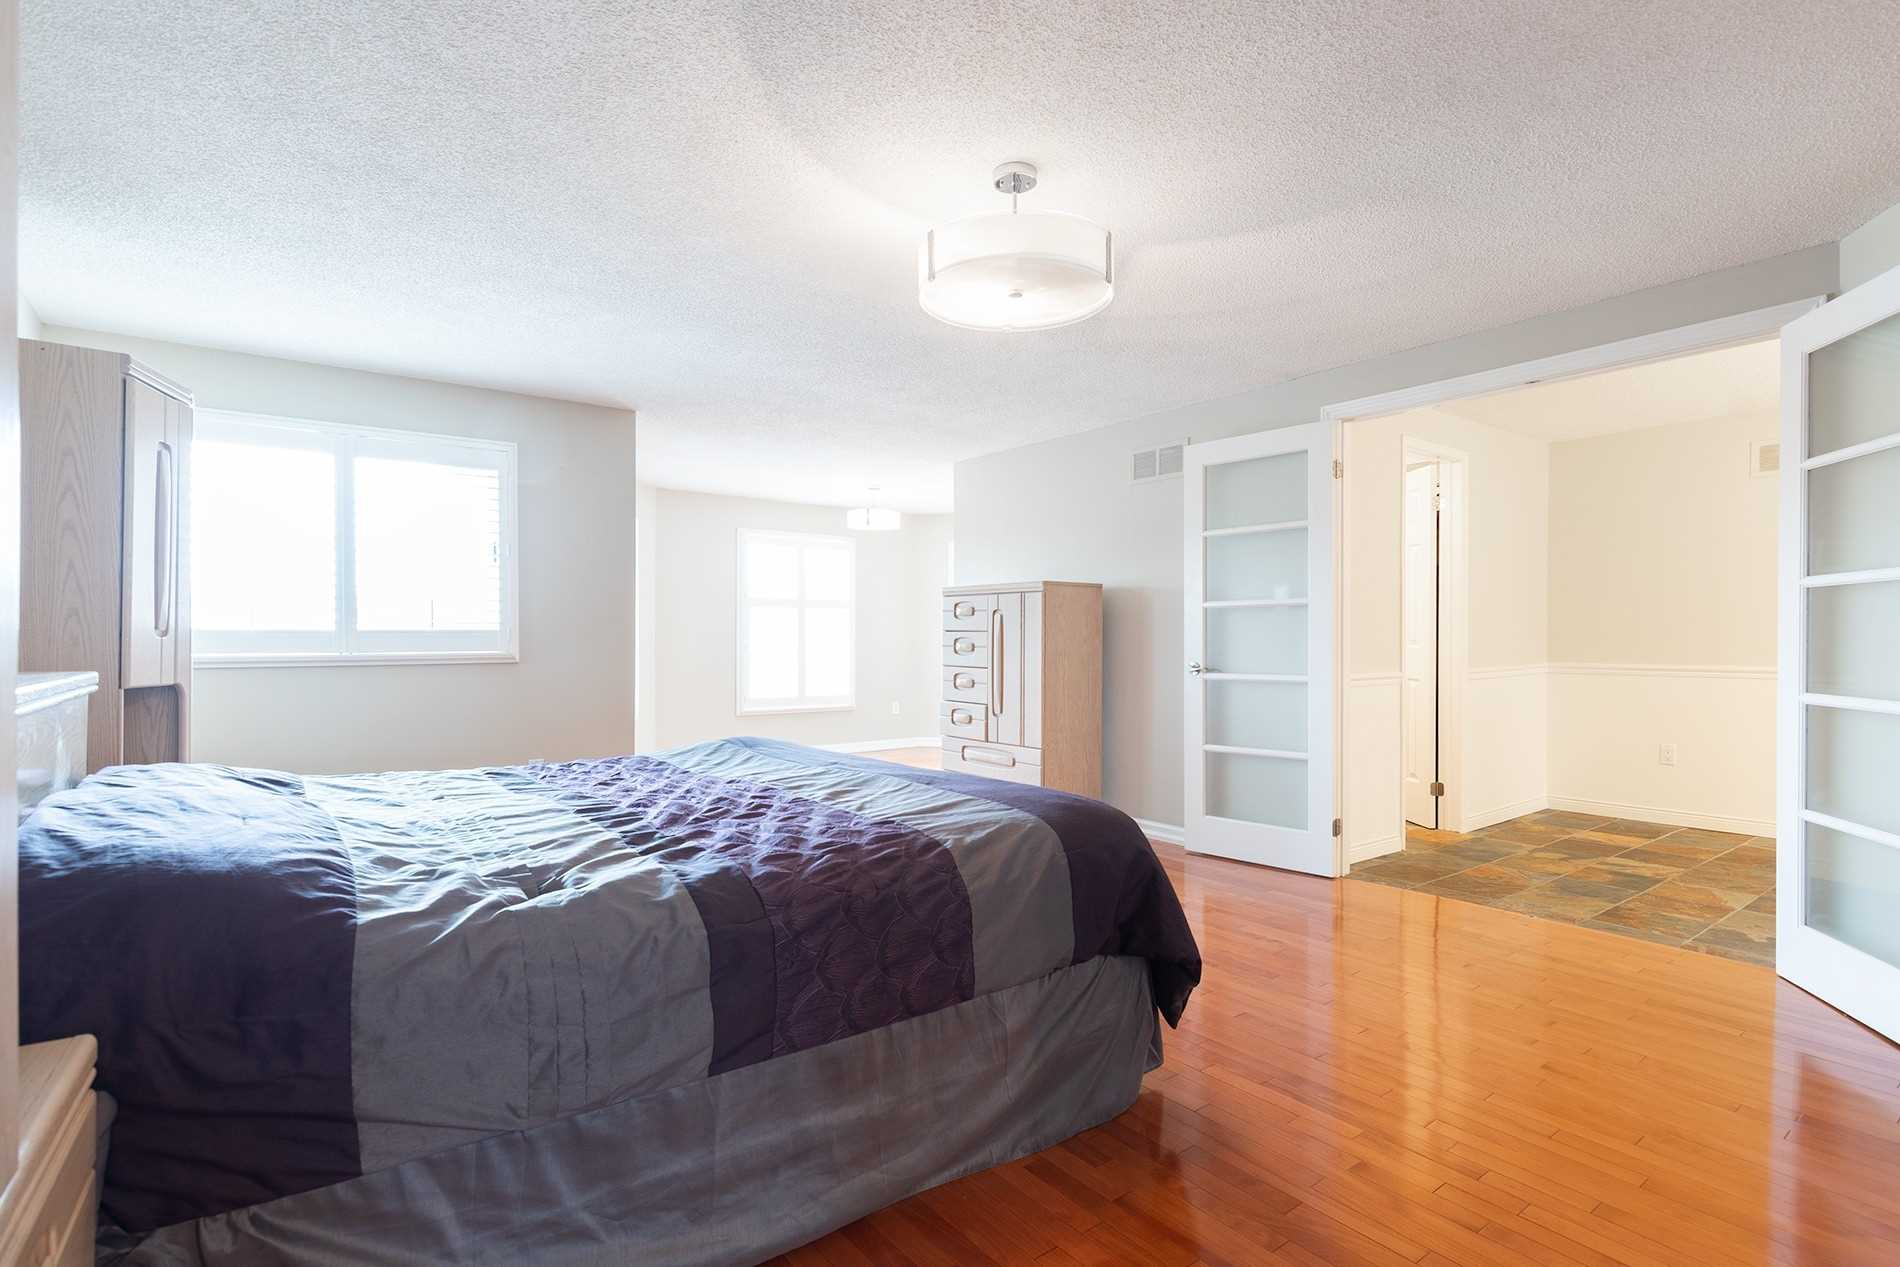 210 Hoover Dr, Pickering E4578017